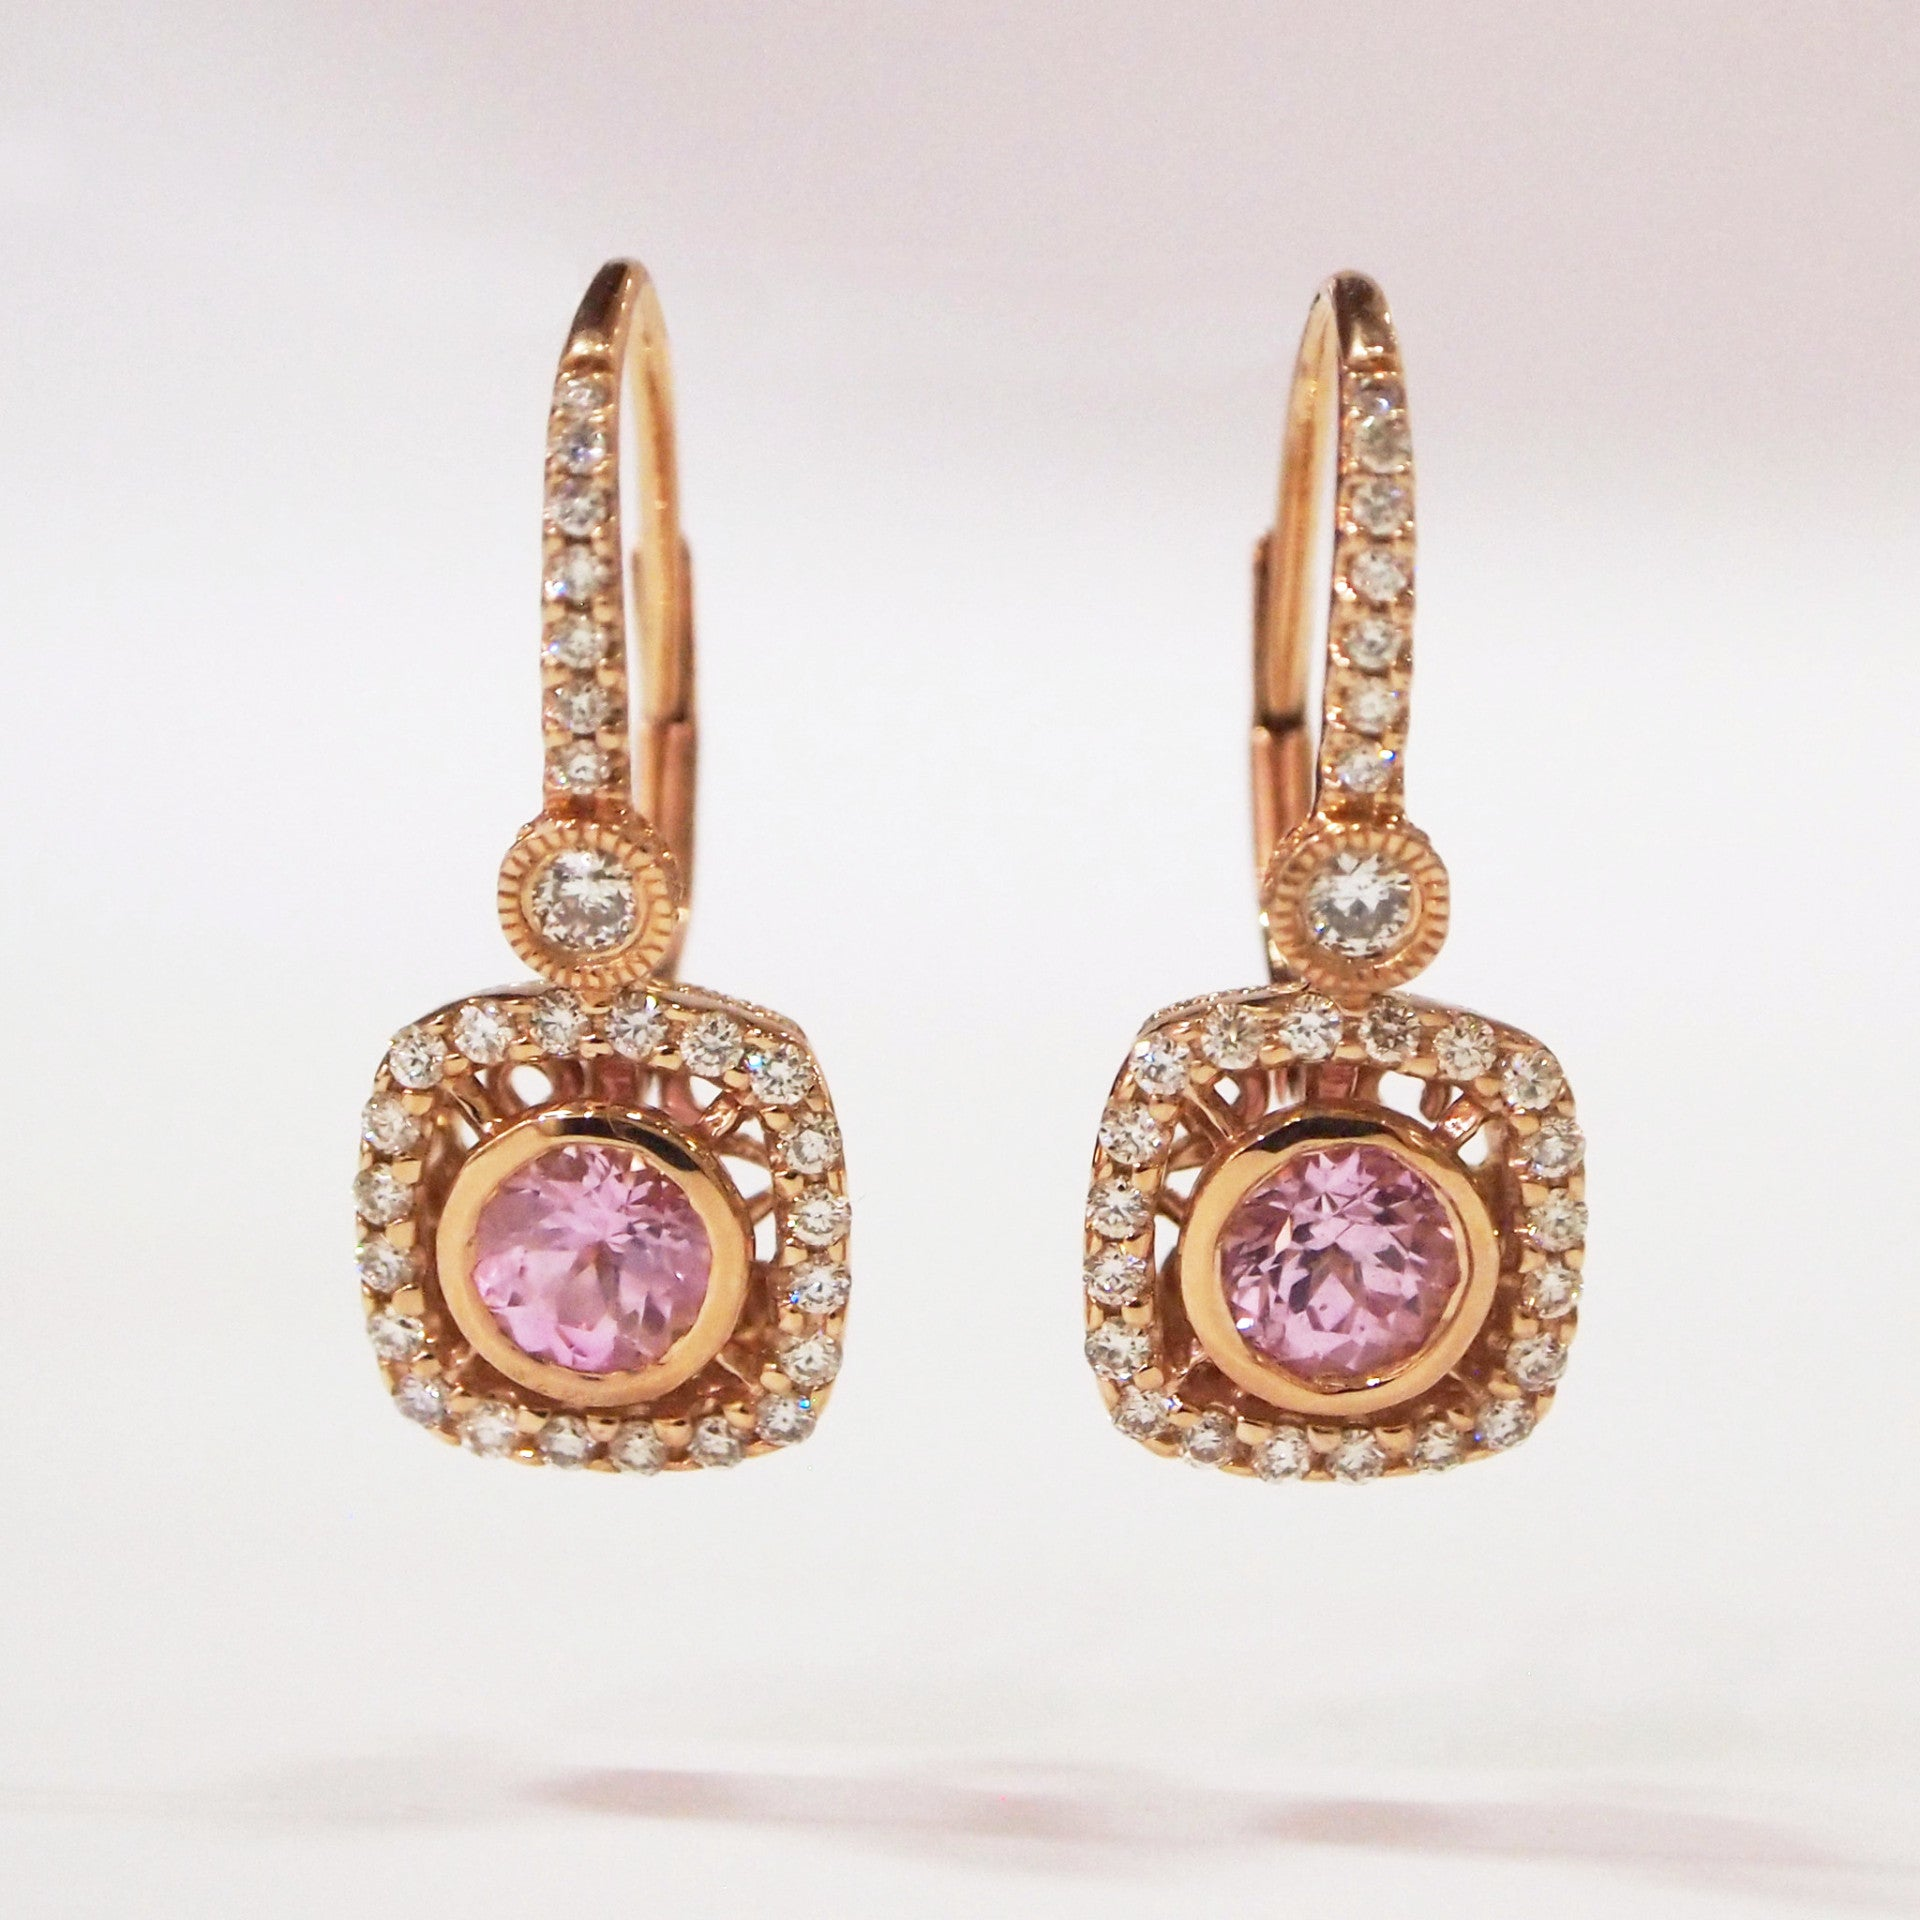 14K pink gold pink sapphire and diamond earrings with 2 pink sapphires and 56 round brilliant-cut diamonds